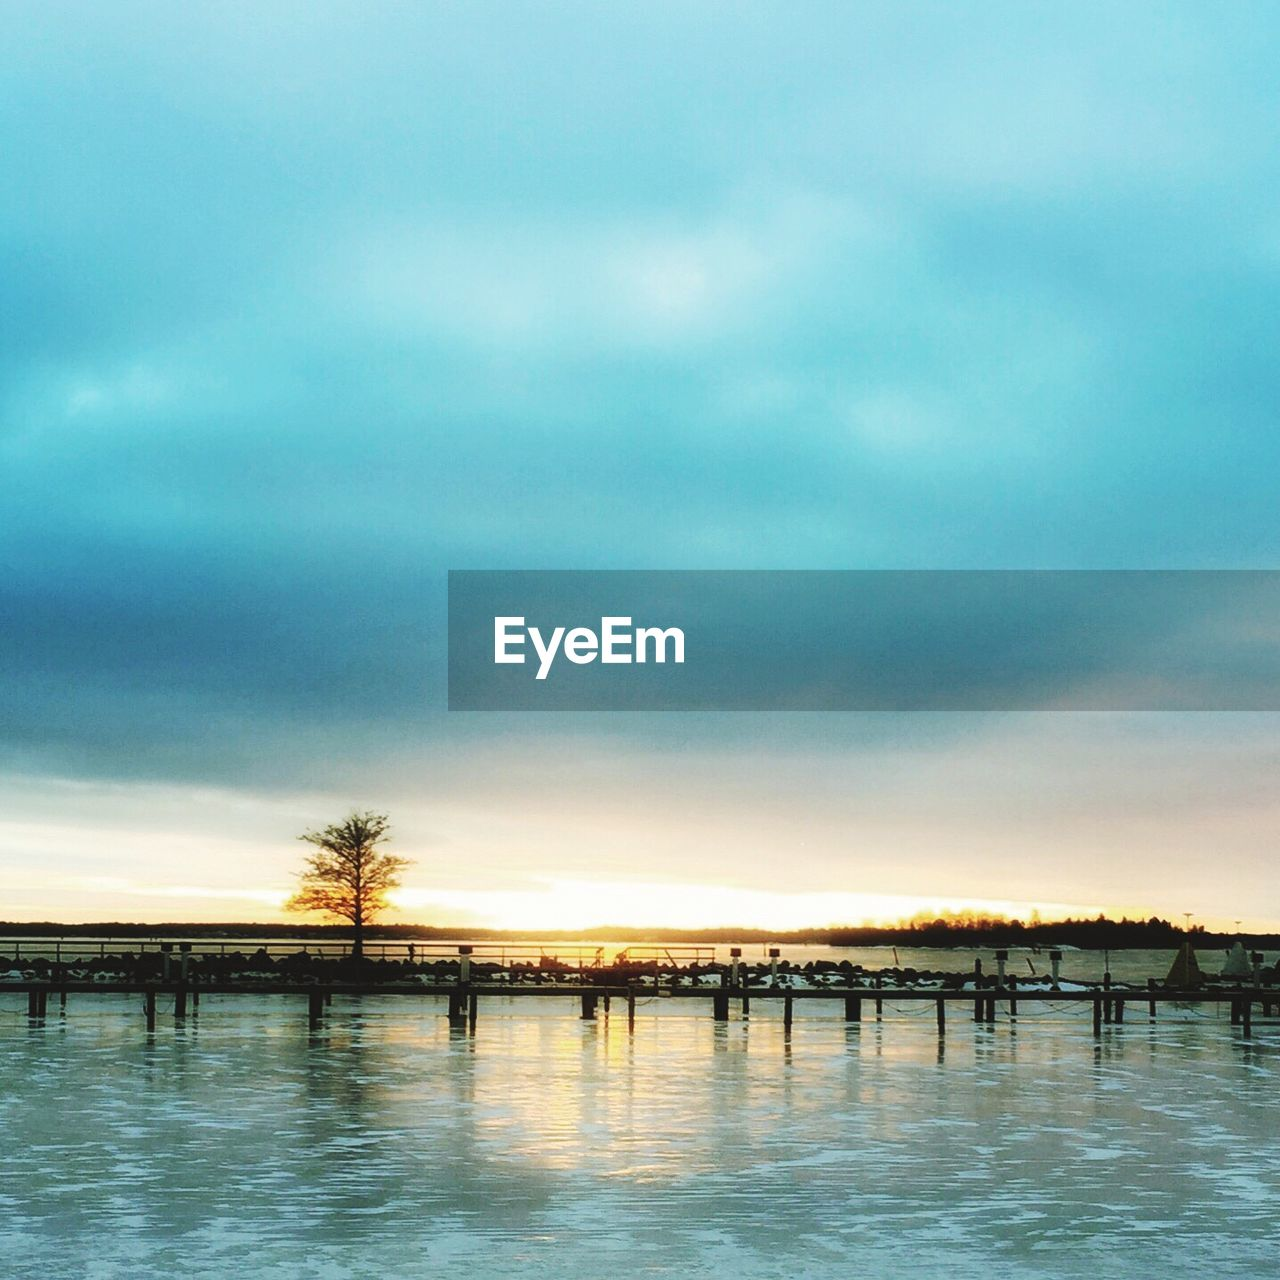 sky, cloud - sky, water, tranquility, sunset, nature, beauty in nature, tranquil scene, scenics, outdoors, waterfront, no people, built structure, bridge - man made structure, architecture, tree, lake, day